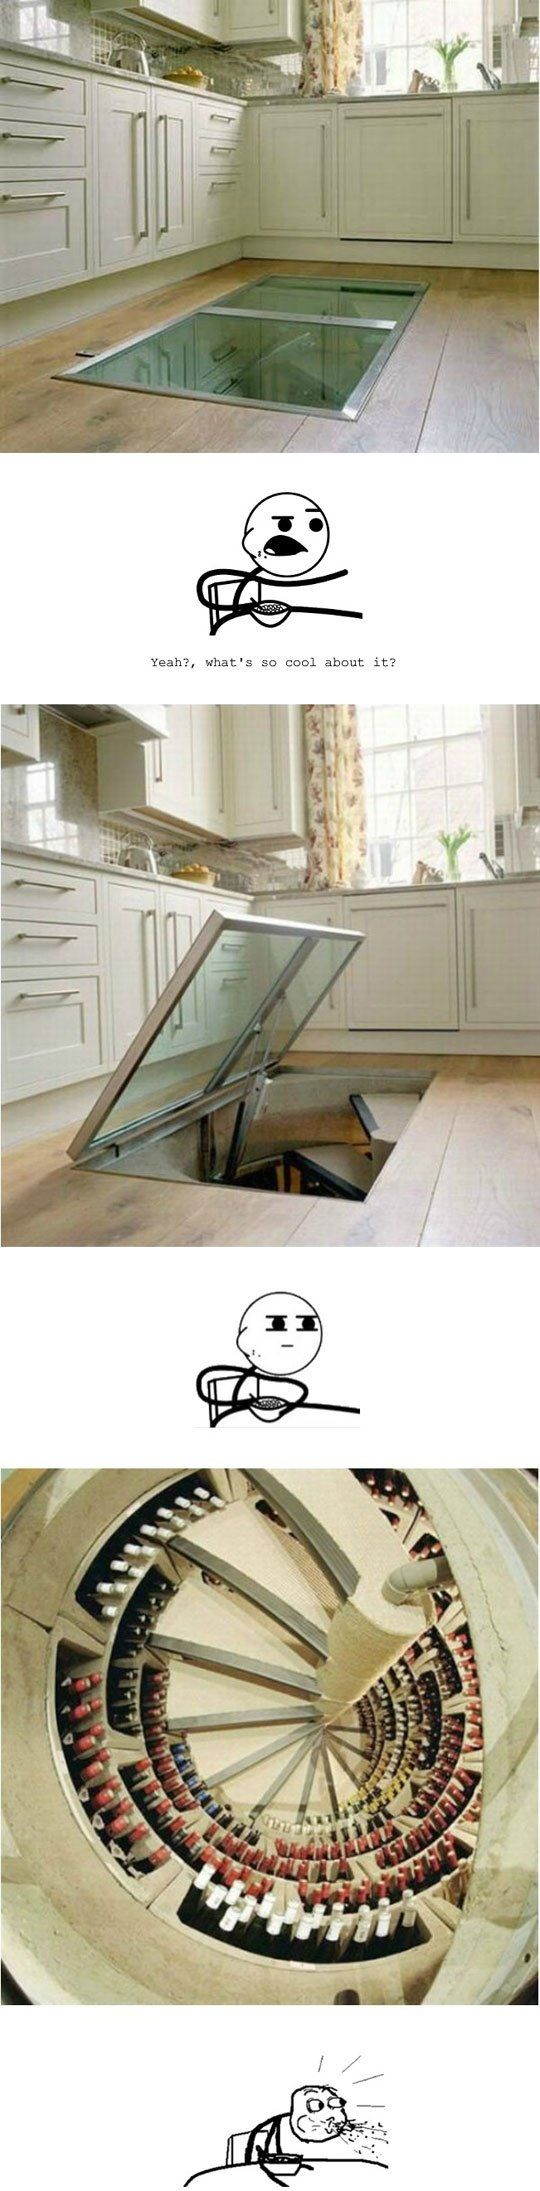 I'd hide here everyday, all day lol